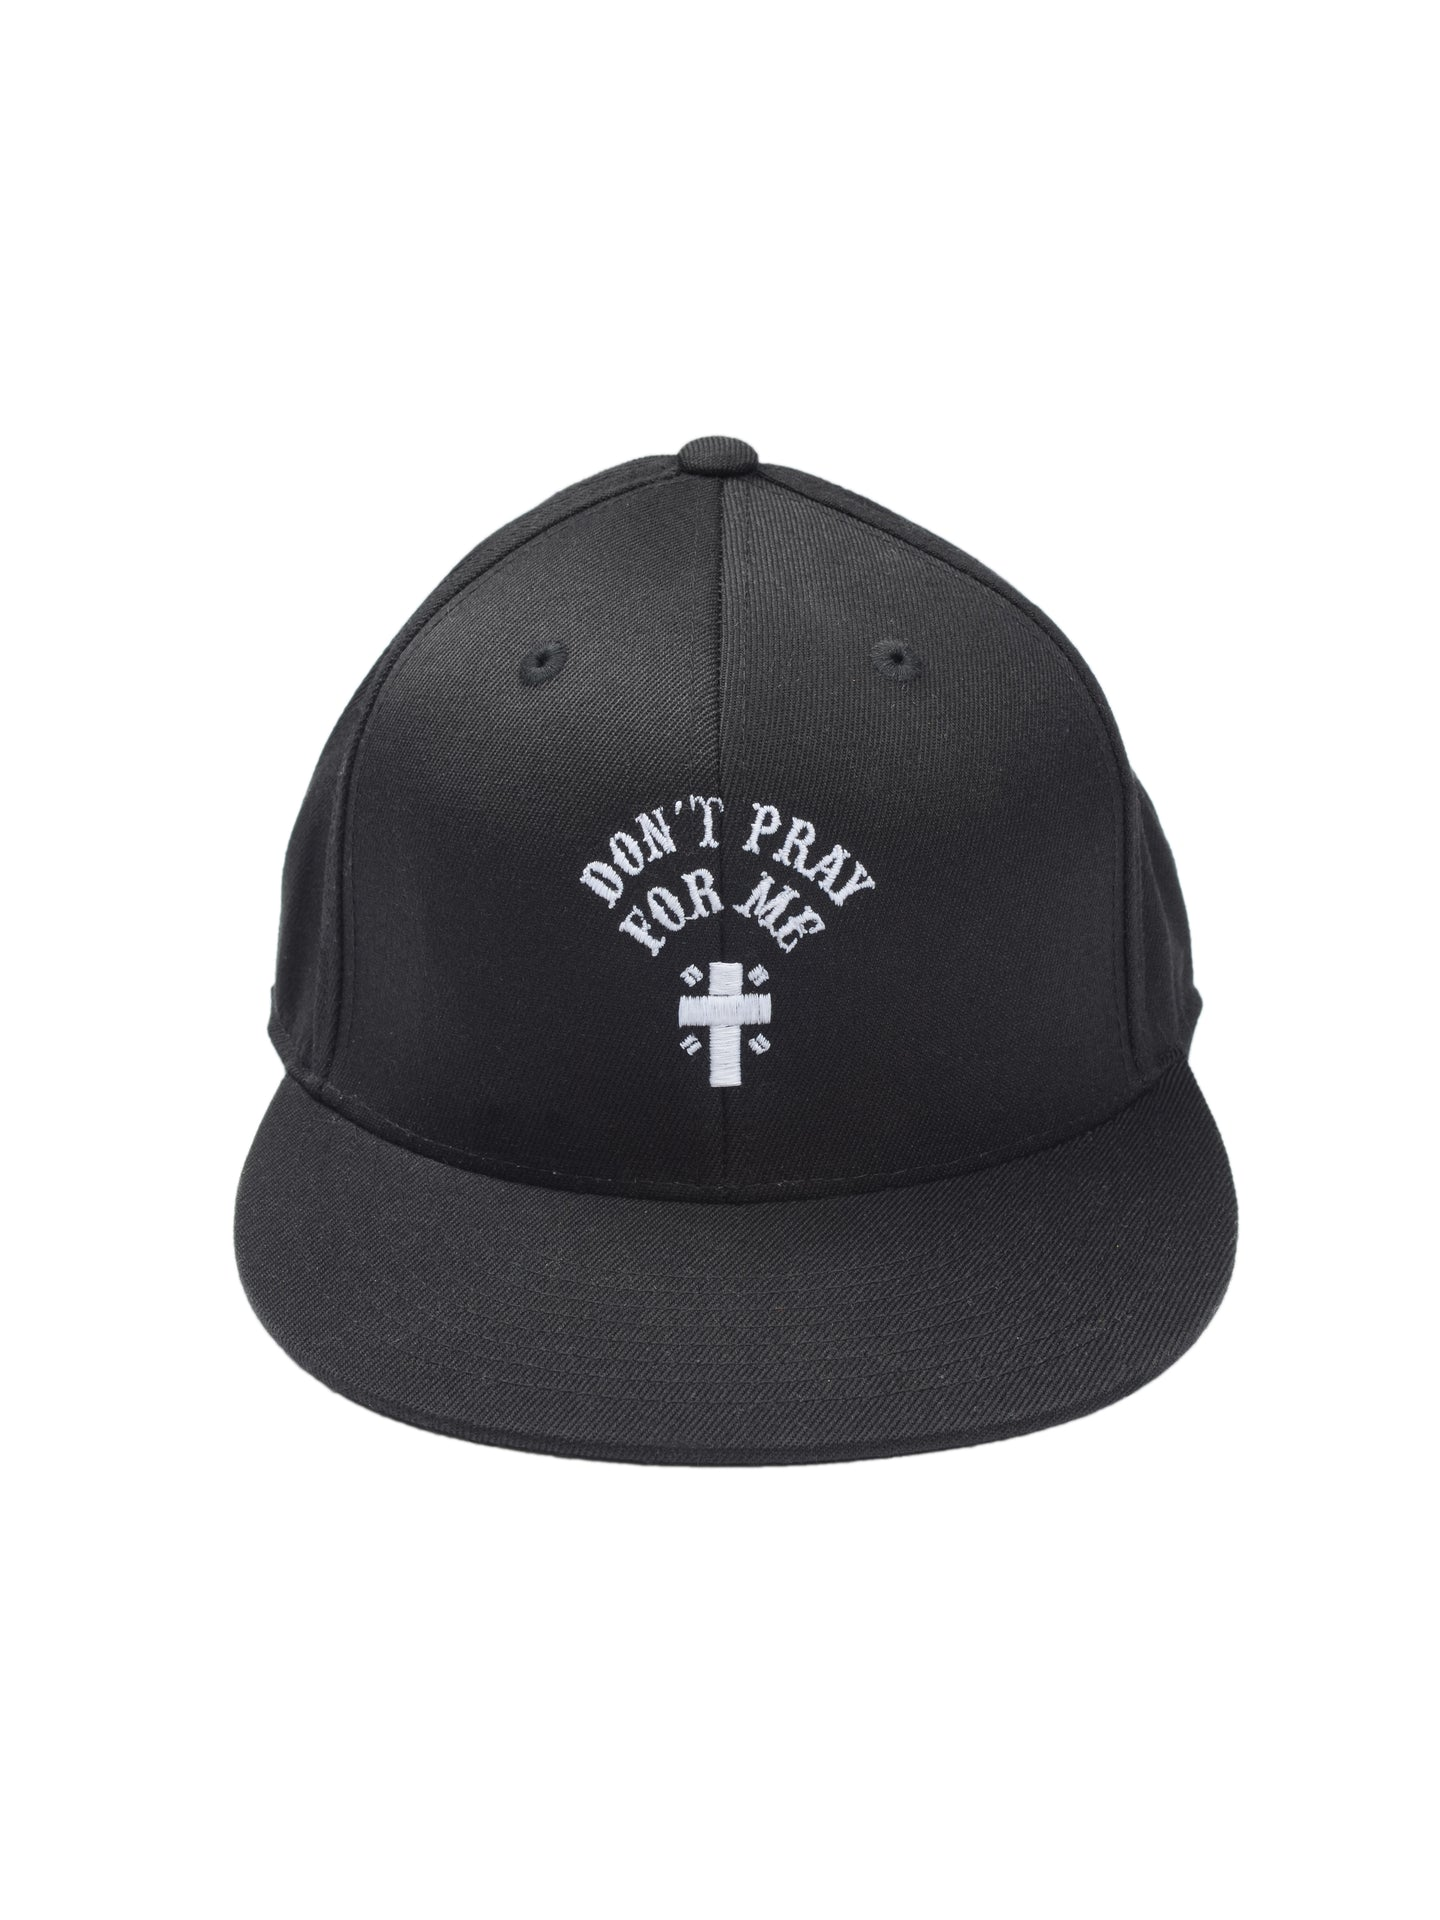 El Solitario Prayers Cap. Front